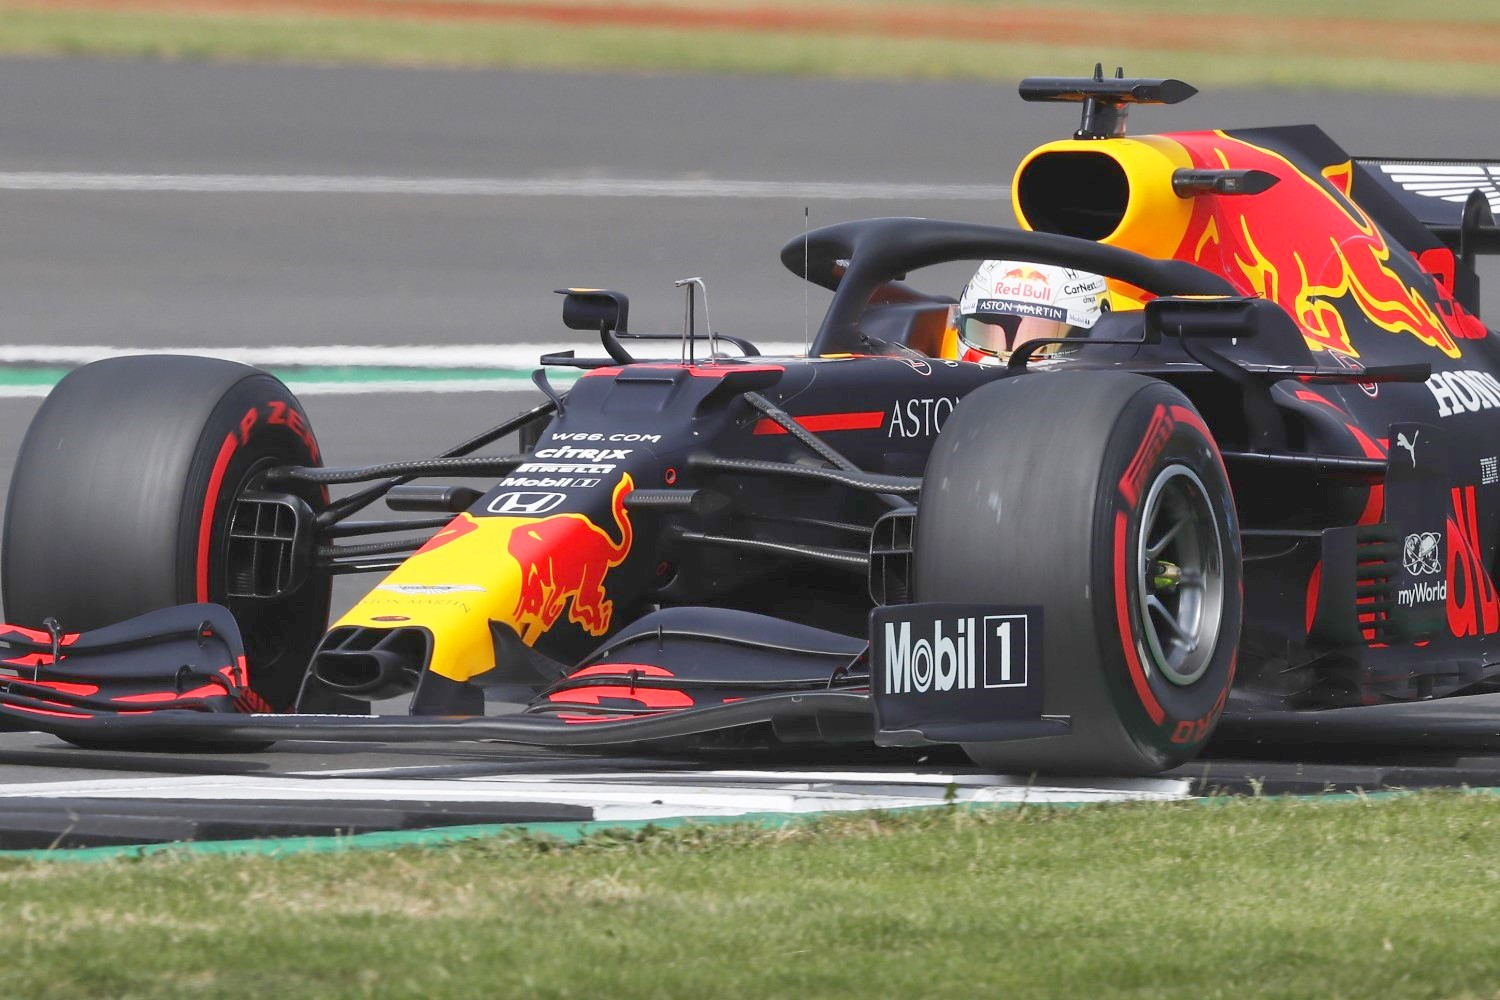 Max Verstappen proved once again he is the most talented driver in F1, beating the two Mercedes with an inferior car.